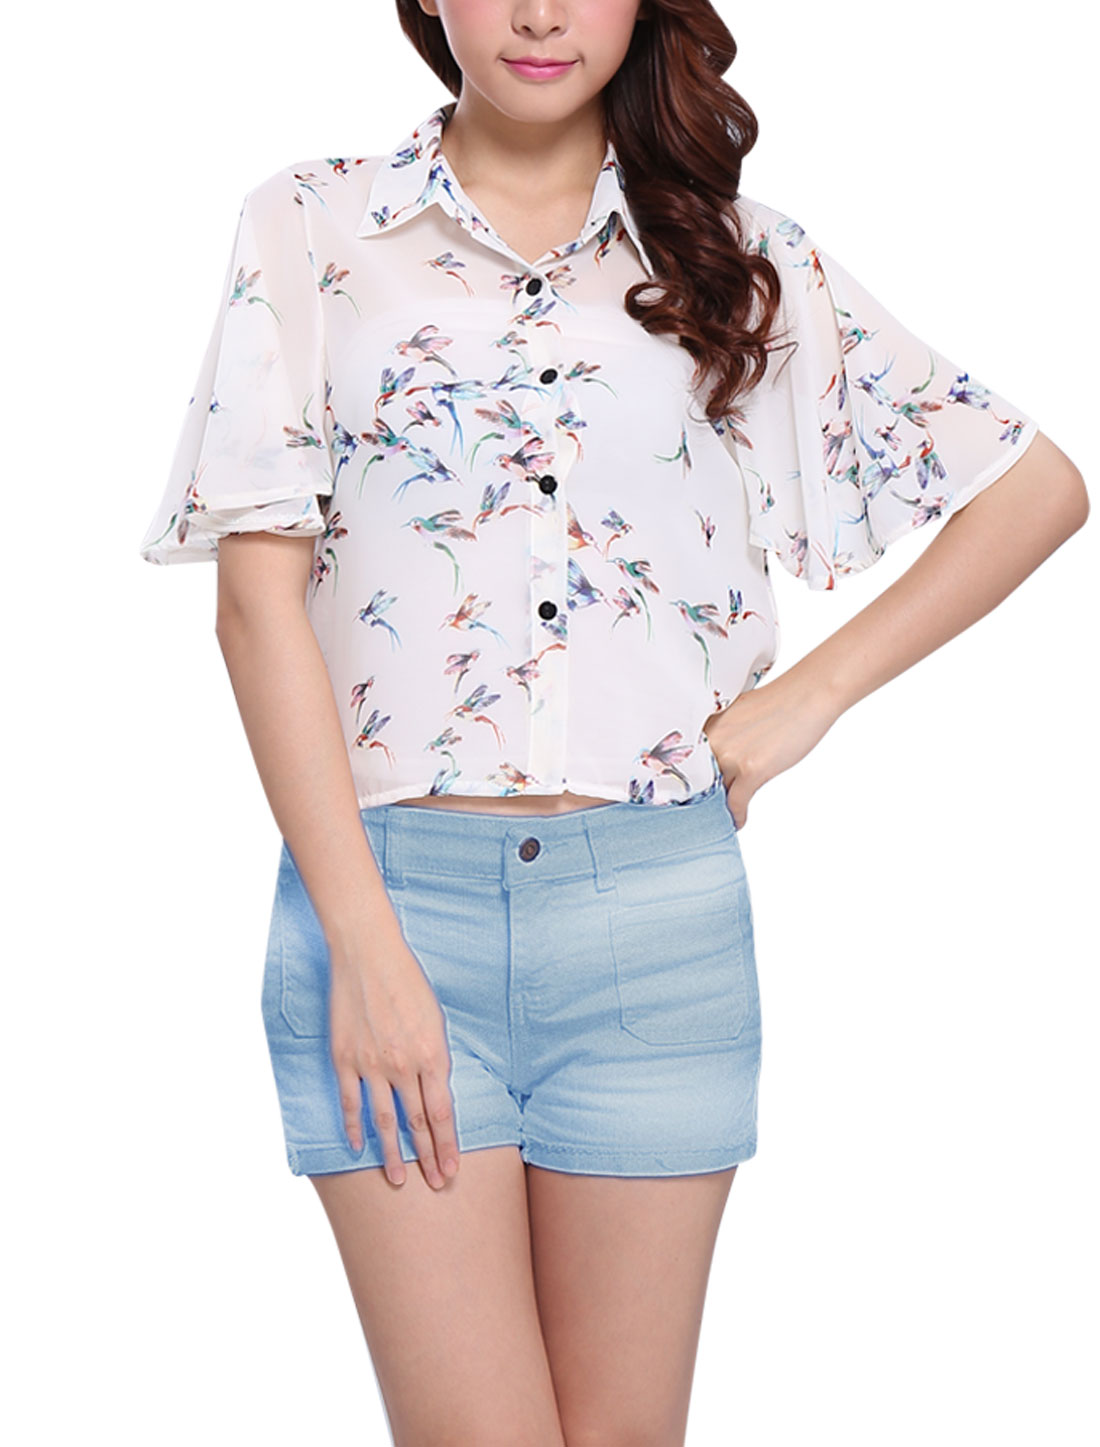 Fly Bird Print Semi Sheer Short Cape Sleeve White XS Chiffon Blouse for Lady